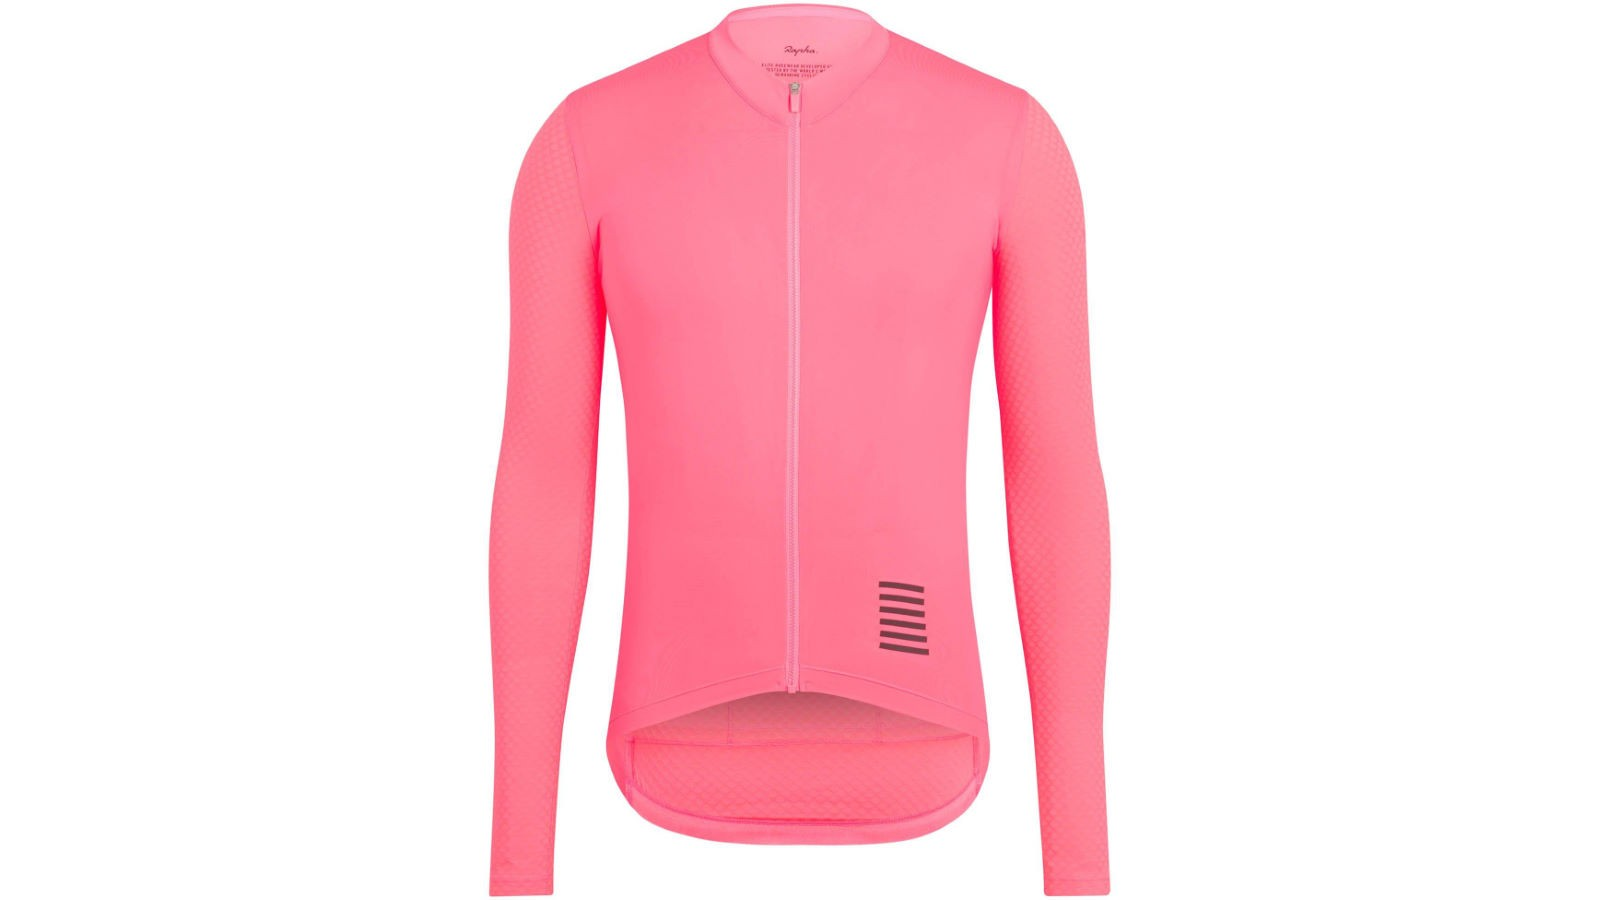 Maintain your speed during the cooler months with the aero Pro Team jersey